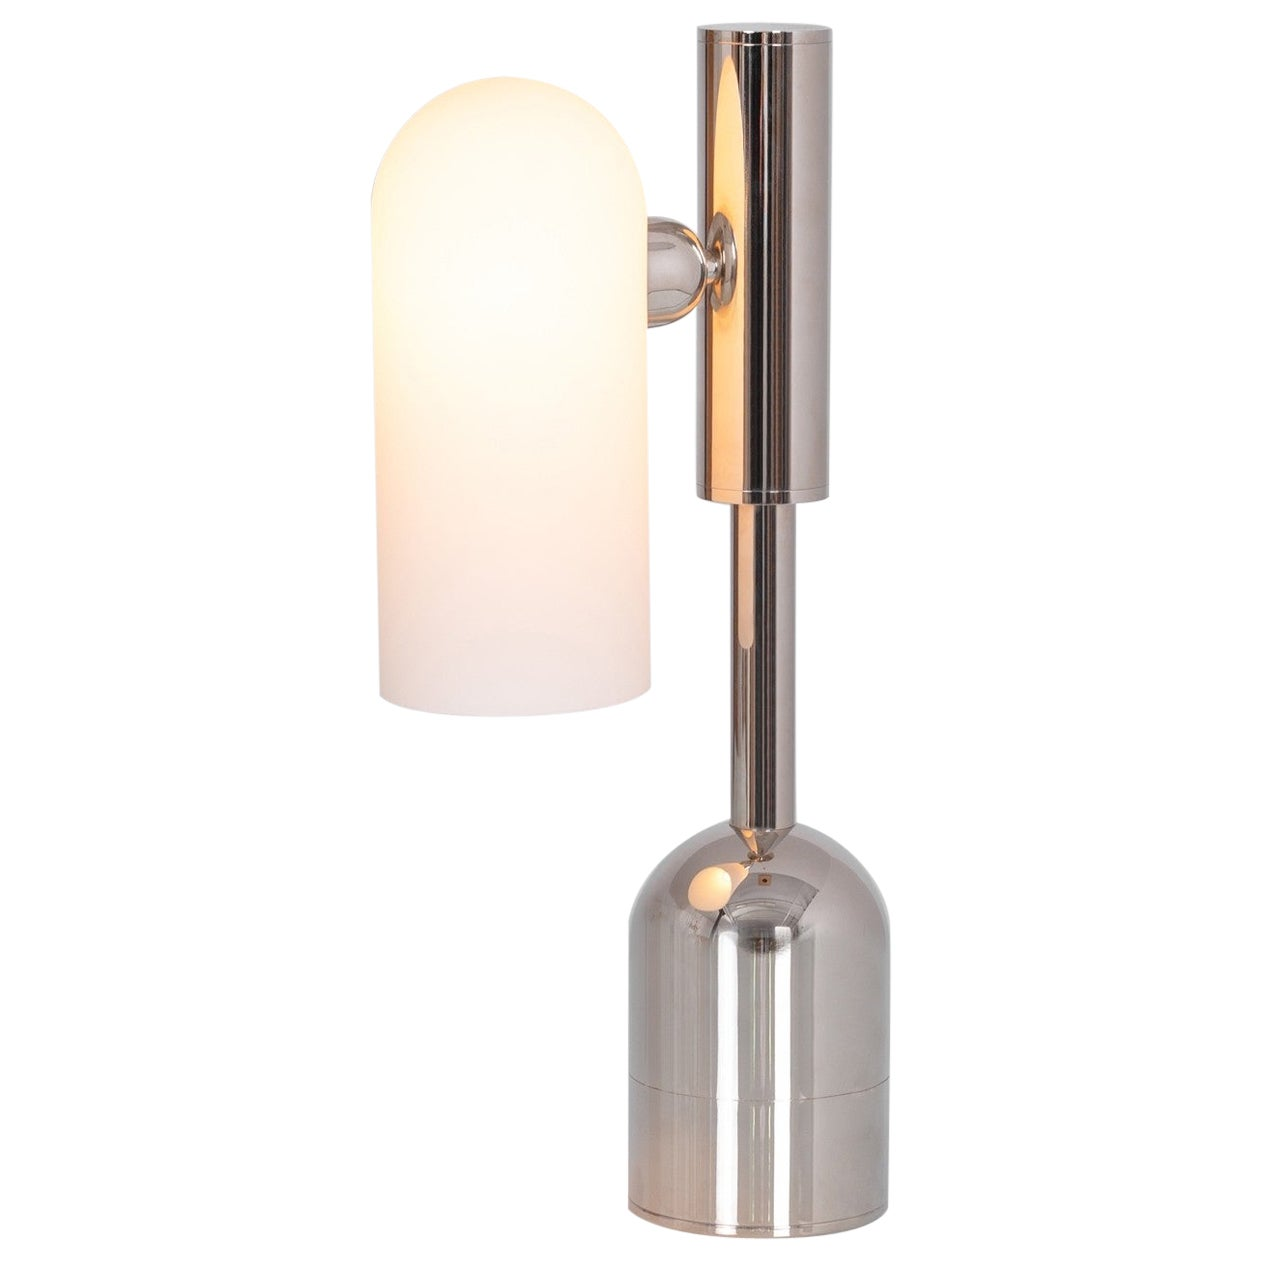 Polished Nickel Table Lamp by Schwung